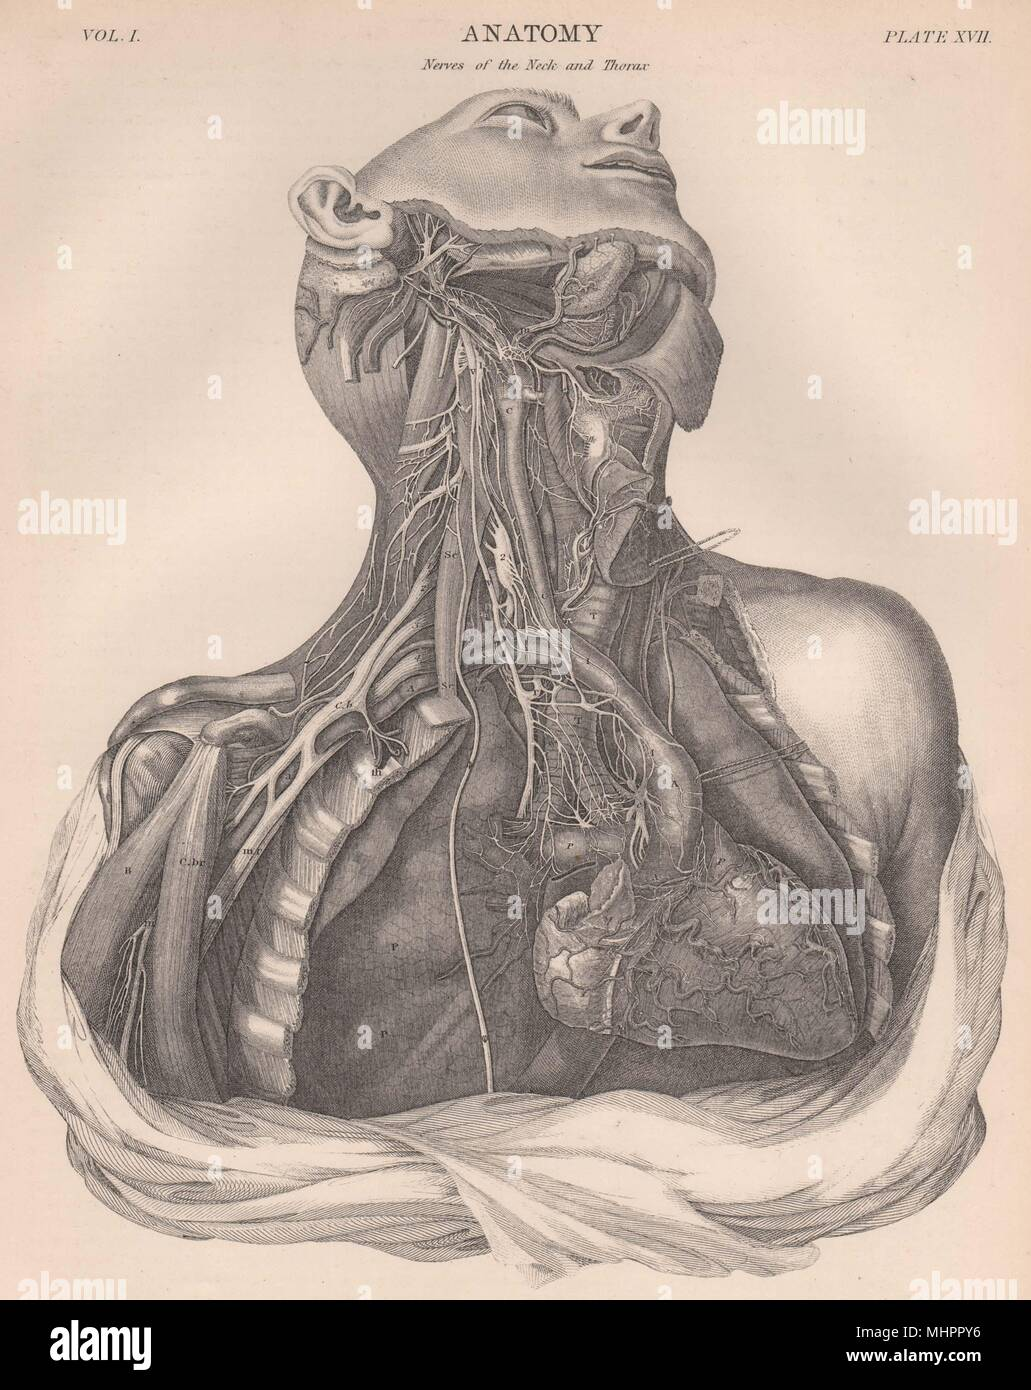 Human Anatomy Nerves Of The Neck And Thorax 1898 Old Antique Print